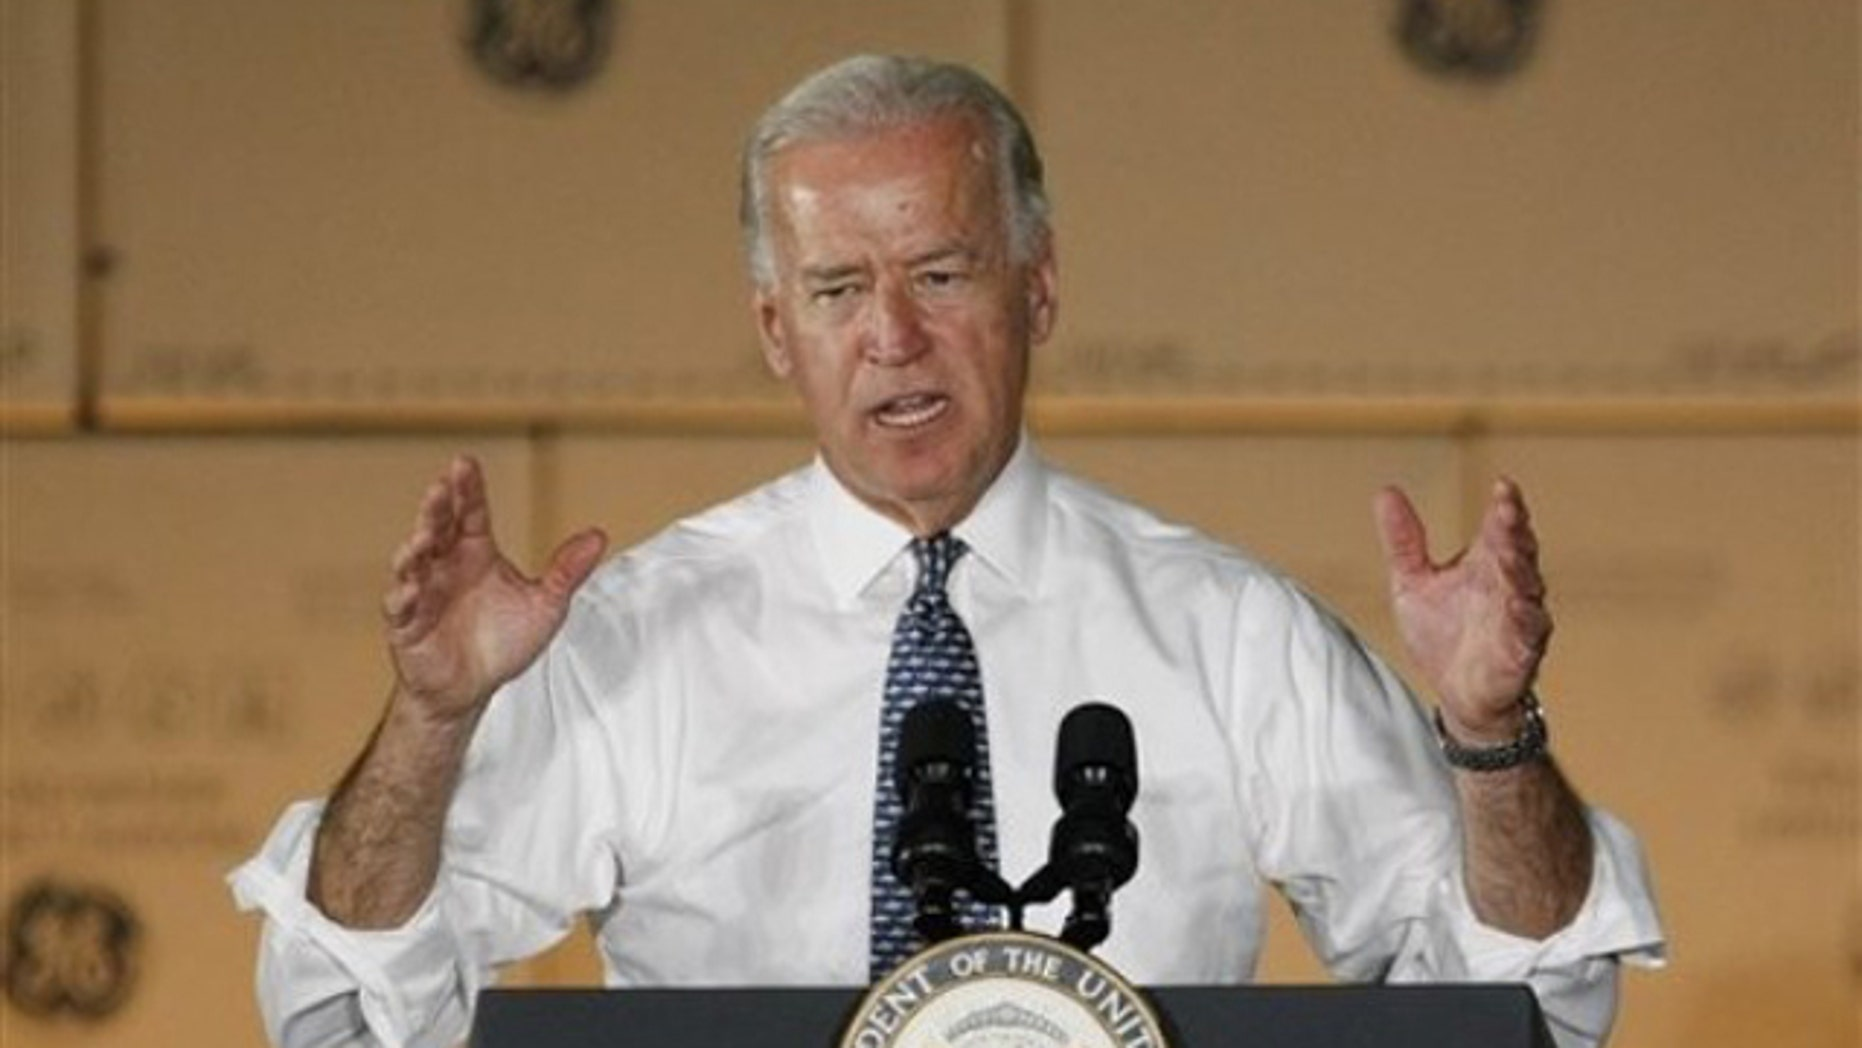 Vice President Biden speaks during a visit to the General Electric plant in Louisville, Ky., June 28. (AP Photo)